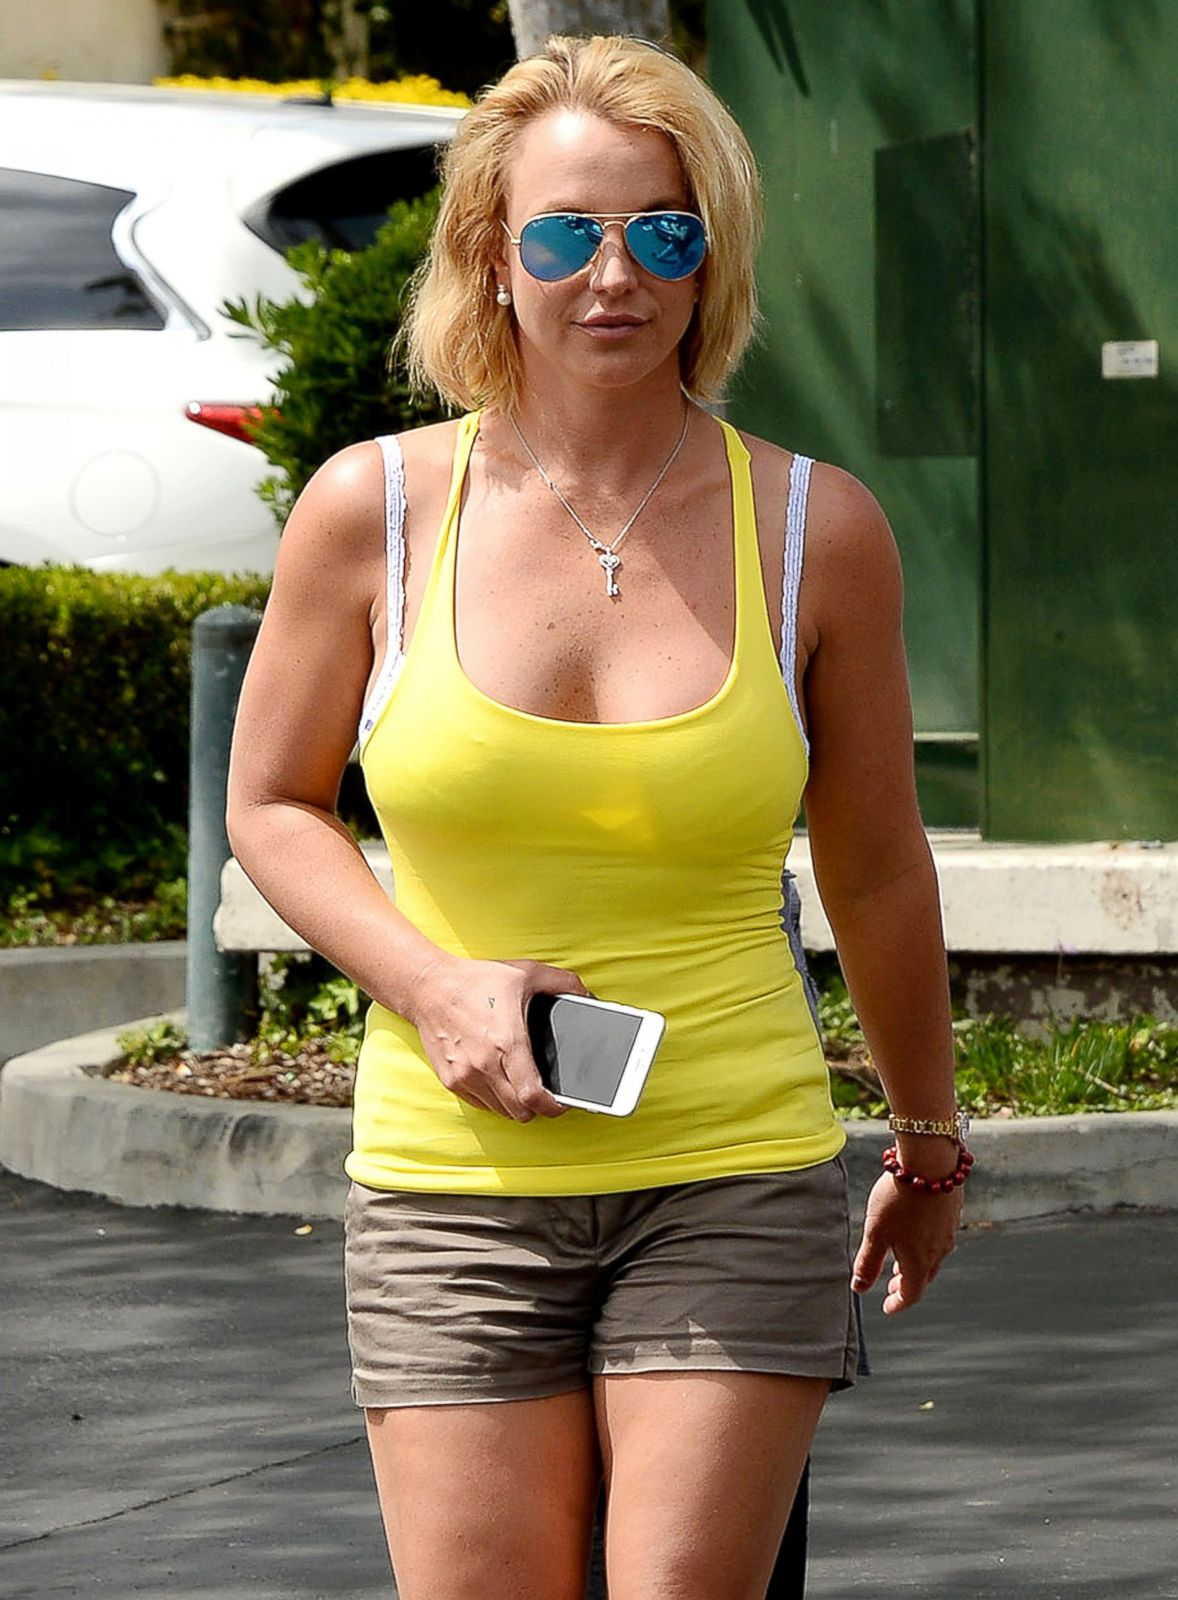 Britney Spears Bikini Body Through Years